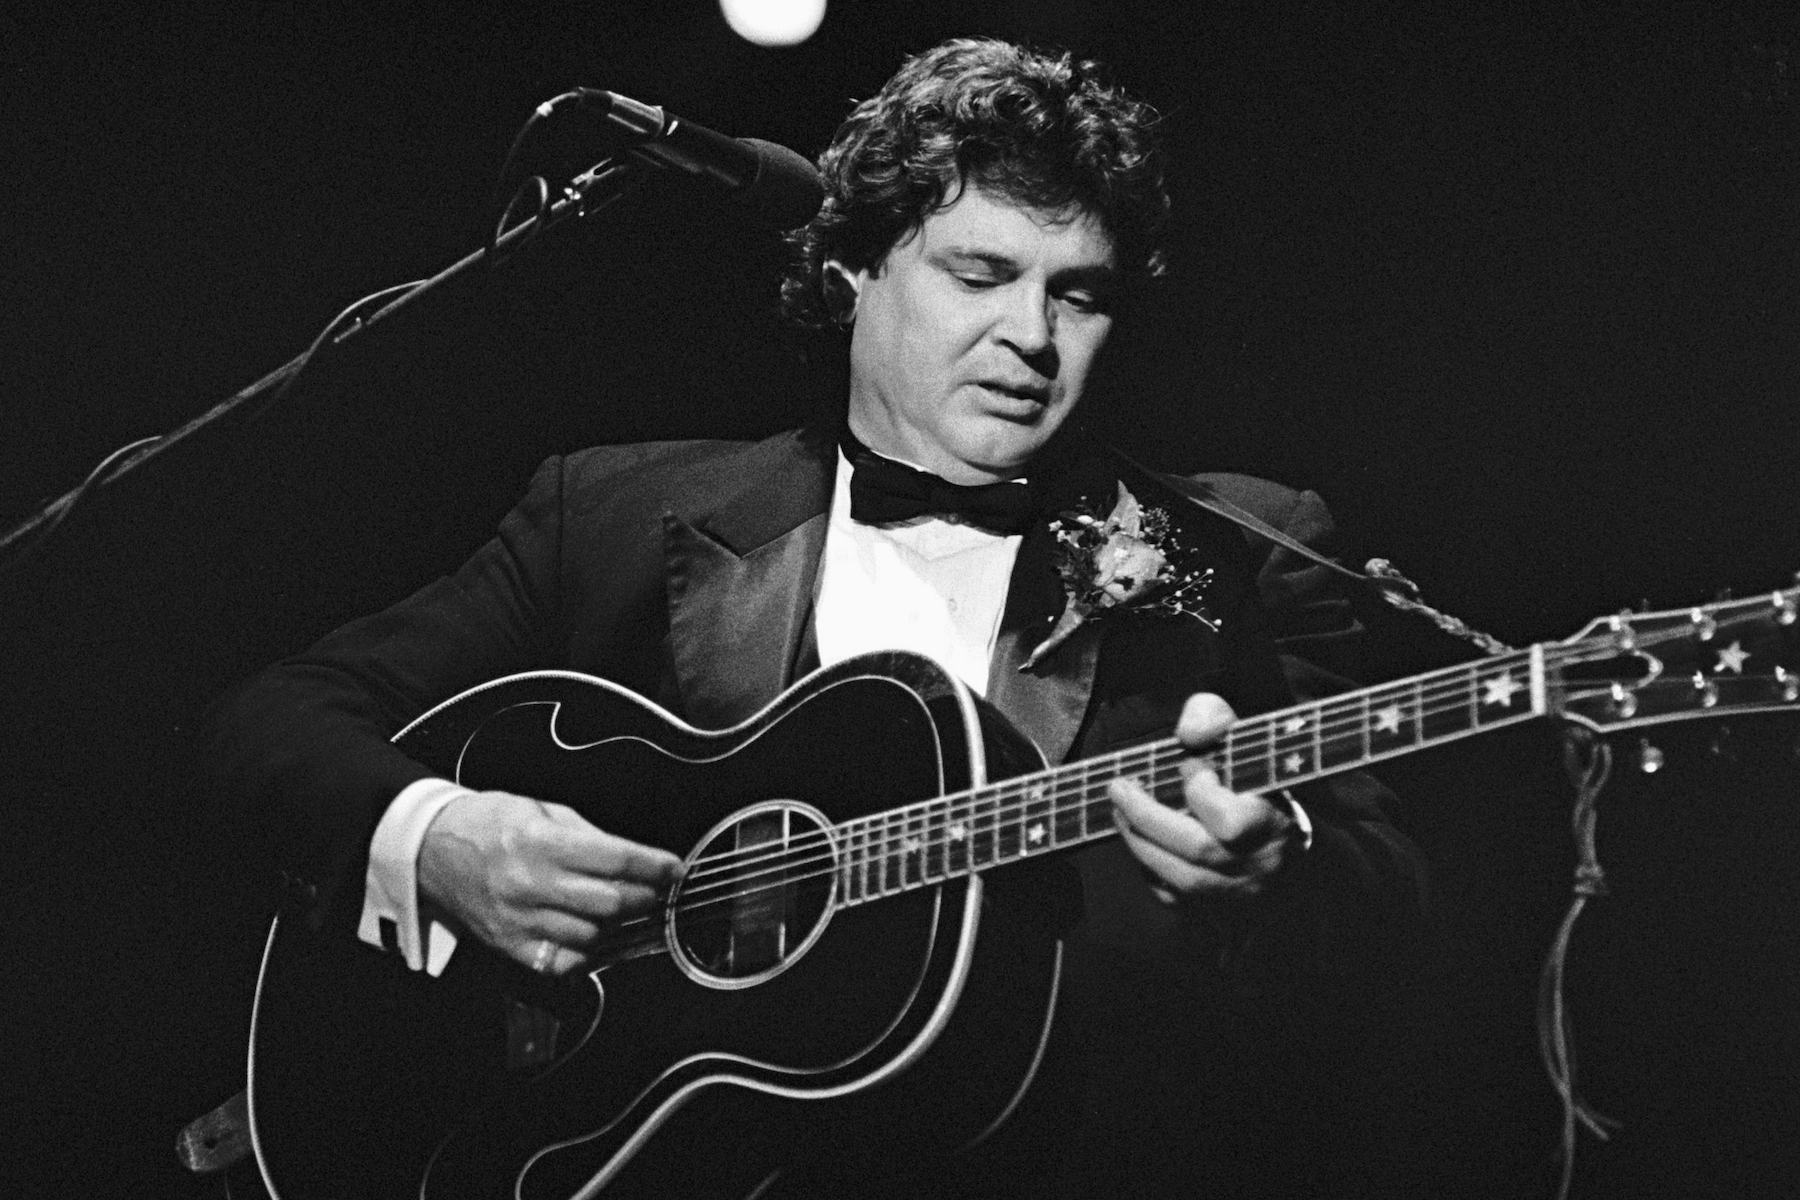 Everly Brothers' Don Everly, Early Rock Pioneer, Dead at 84 - Rolling Stone